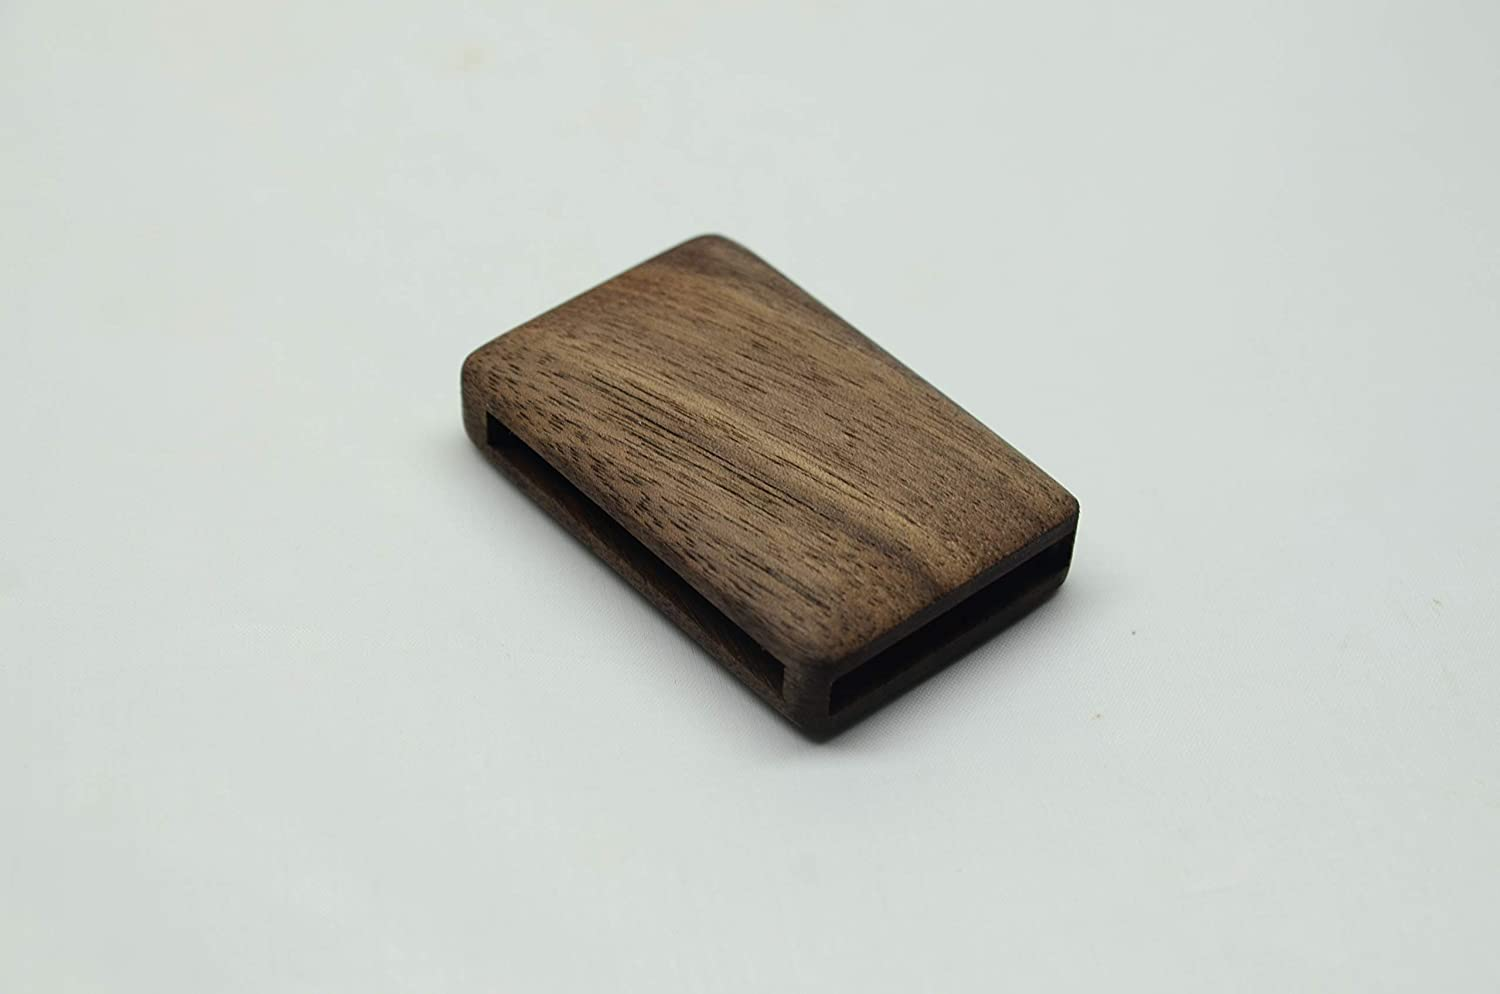 Handmade Desert Ironwood Remote Key fob Shell for VOLVO XC90 V90 S90 XC60 V60 S60 XC40 Polestar1 Unique Look Natural Wood Ideal Gift